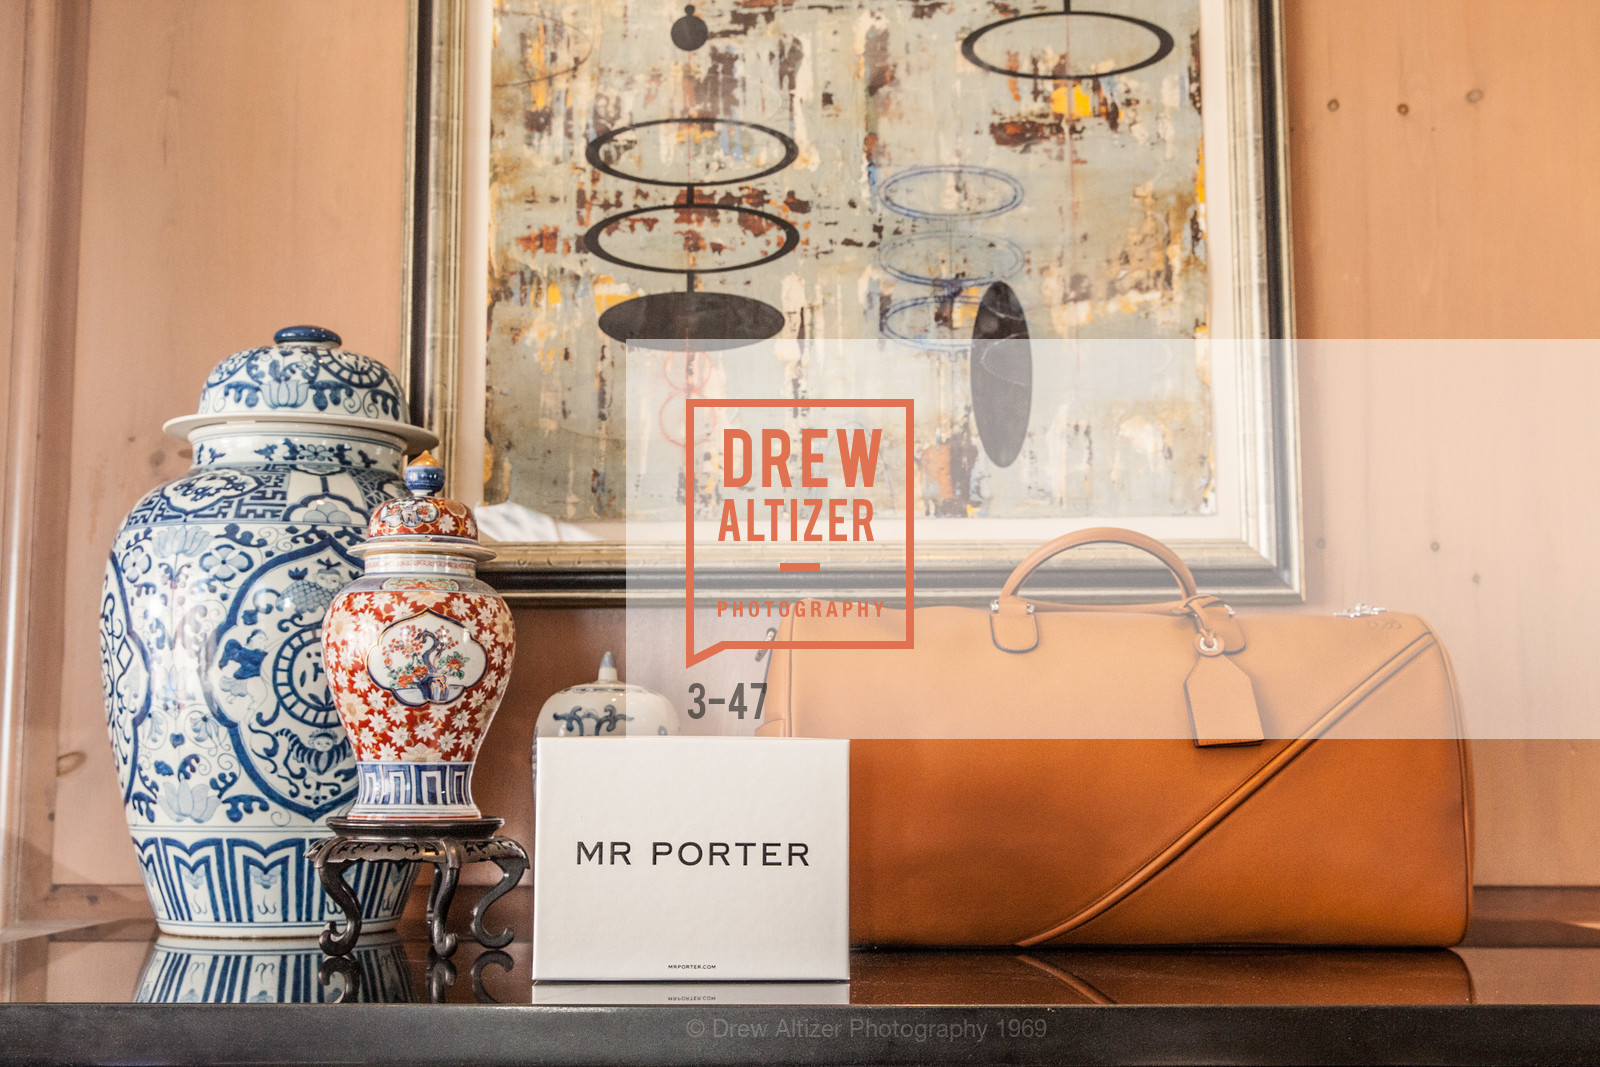 Extras, Mr. Porter Celebrates The San Francisco Issue of The Journal, April 22nd, 2015, Photo,Drew Altizer, Drew Altizer Photography, full-service agency, private events, San Francisco photographer, photographer california